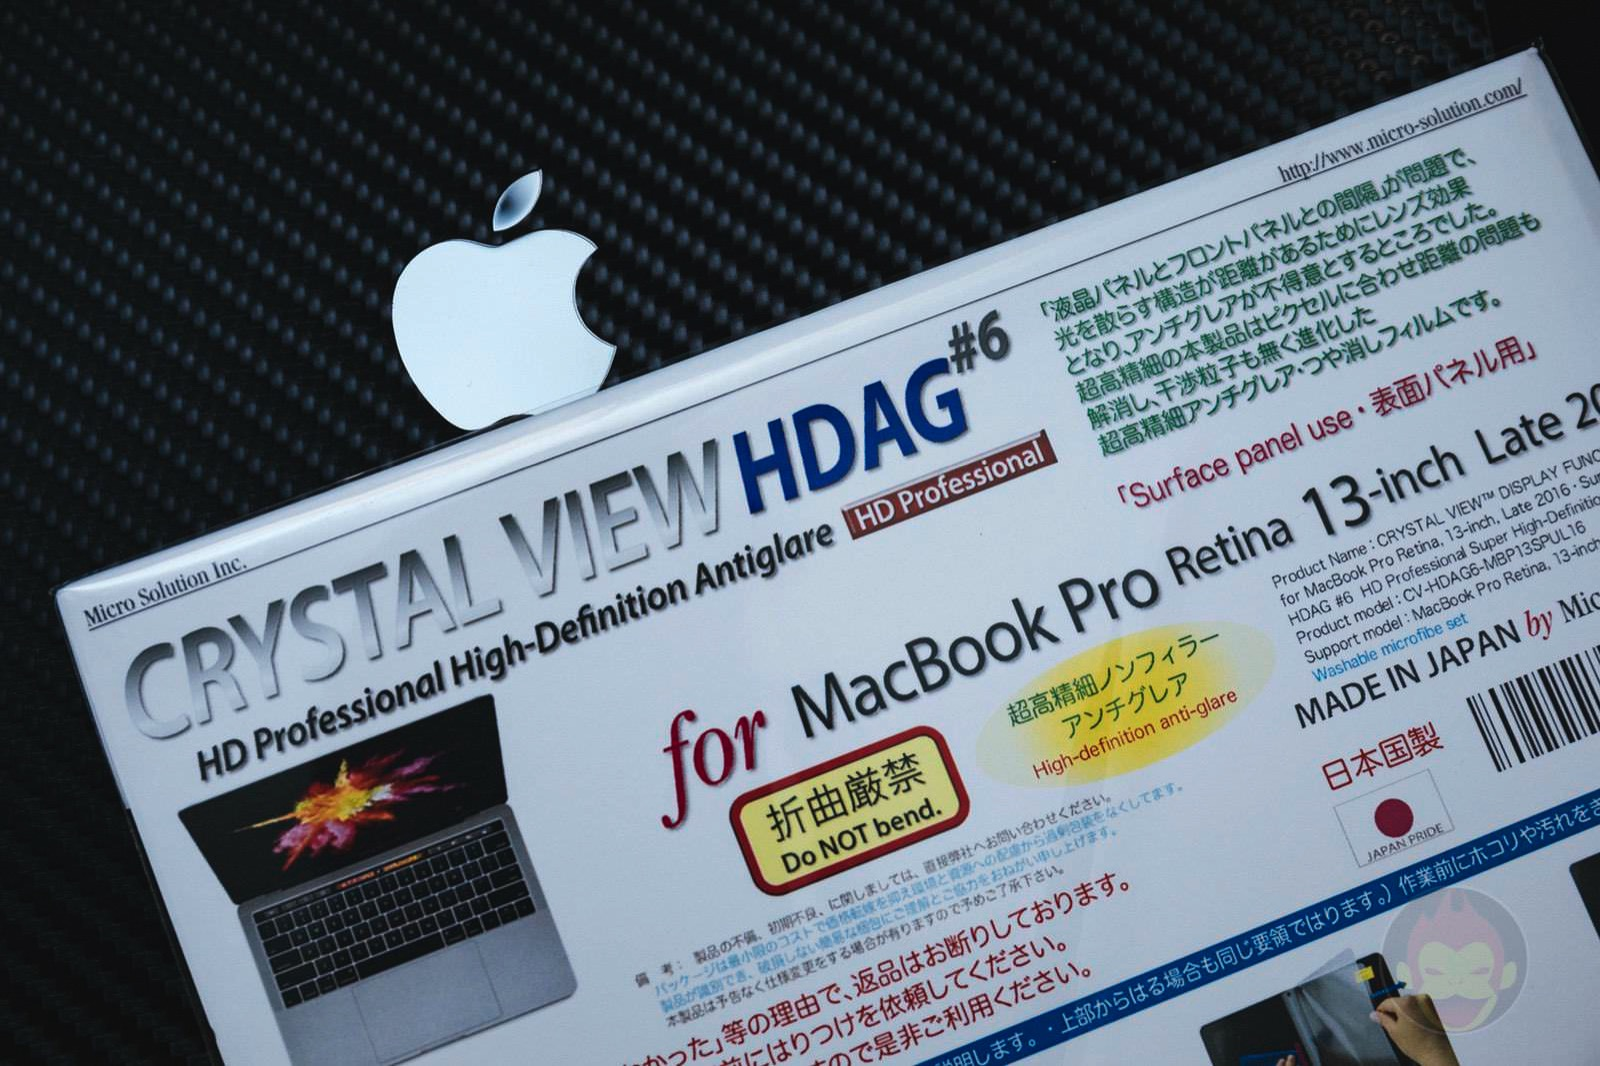 MacBook Pro 13inch antiglare film 01